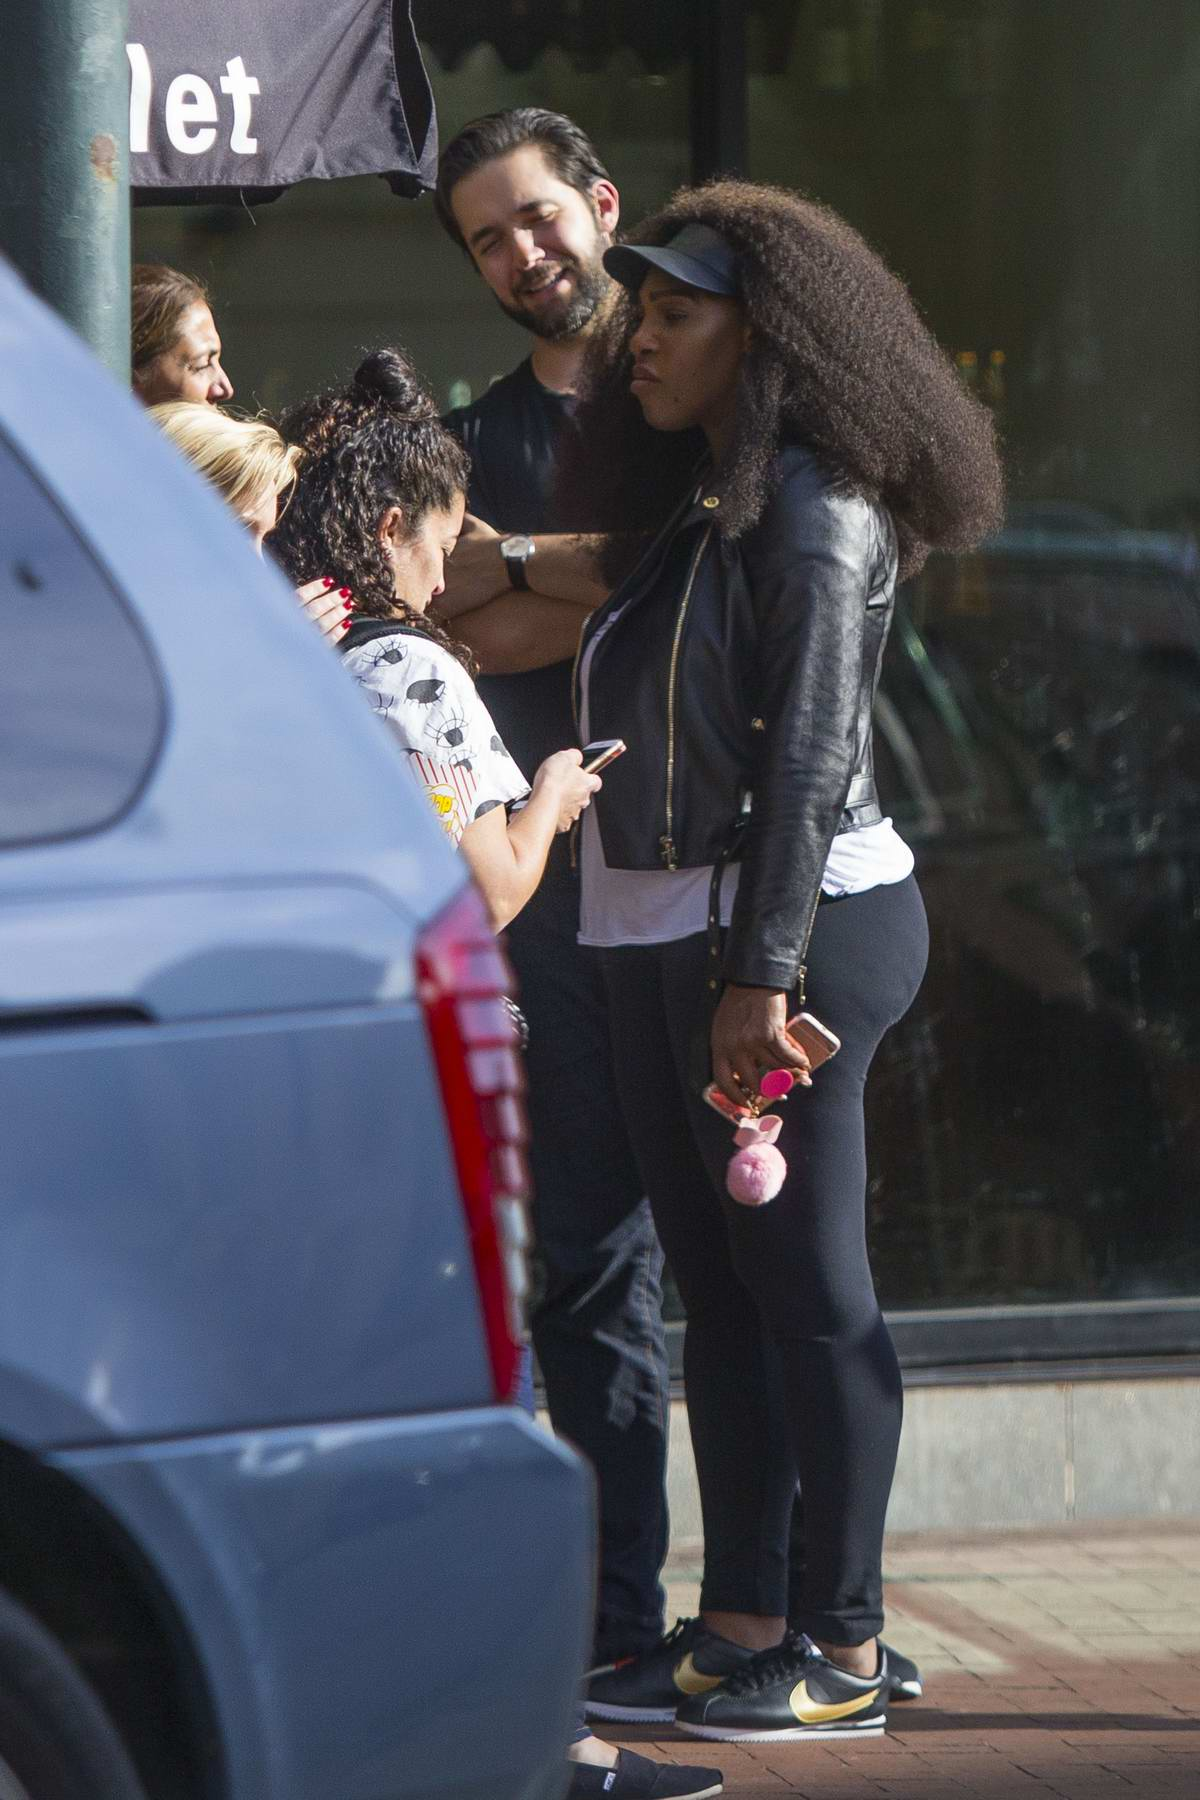 Serena Williams spotted with fiancé Alexis Ohanian while making wedding plans in New Orleans